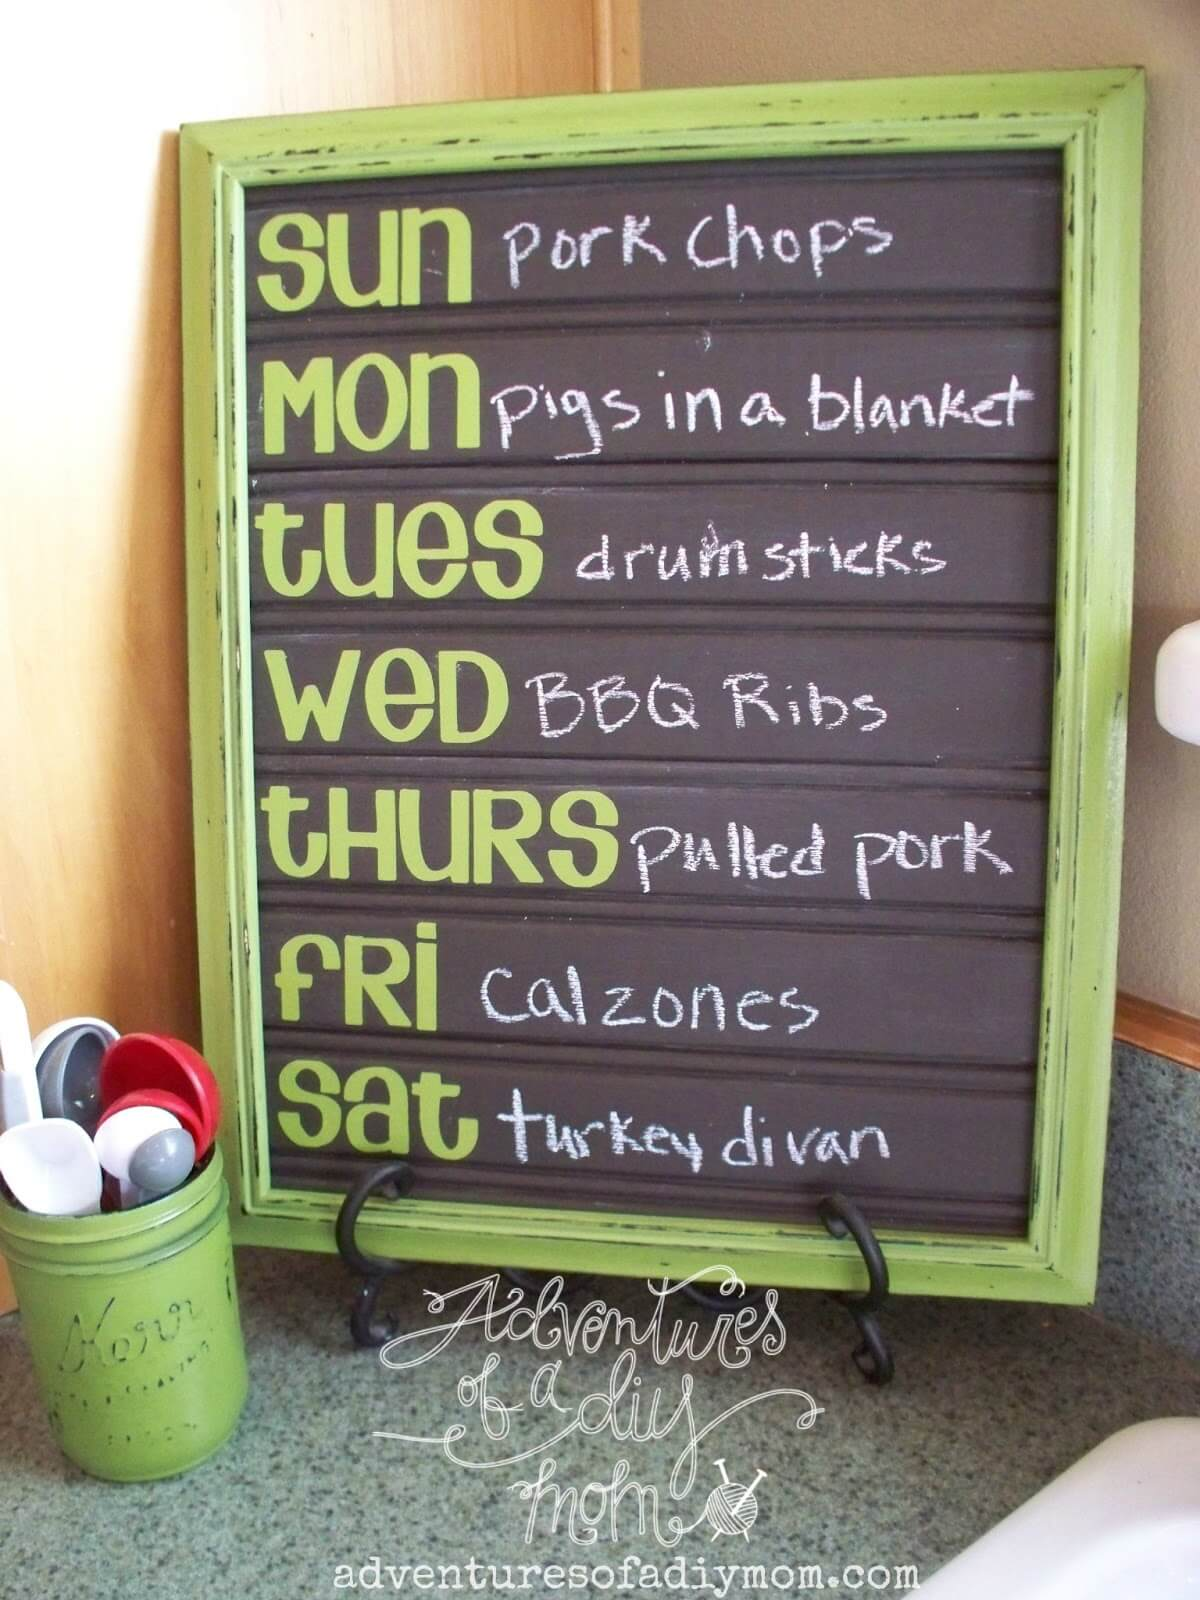 Your Weekly Menu Plan in a Frame